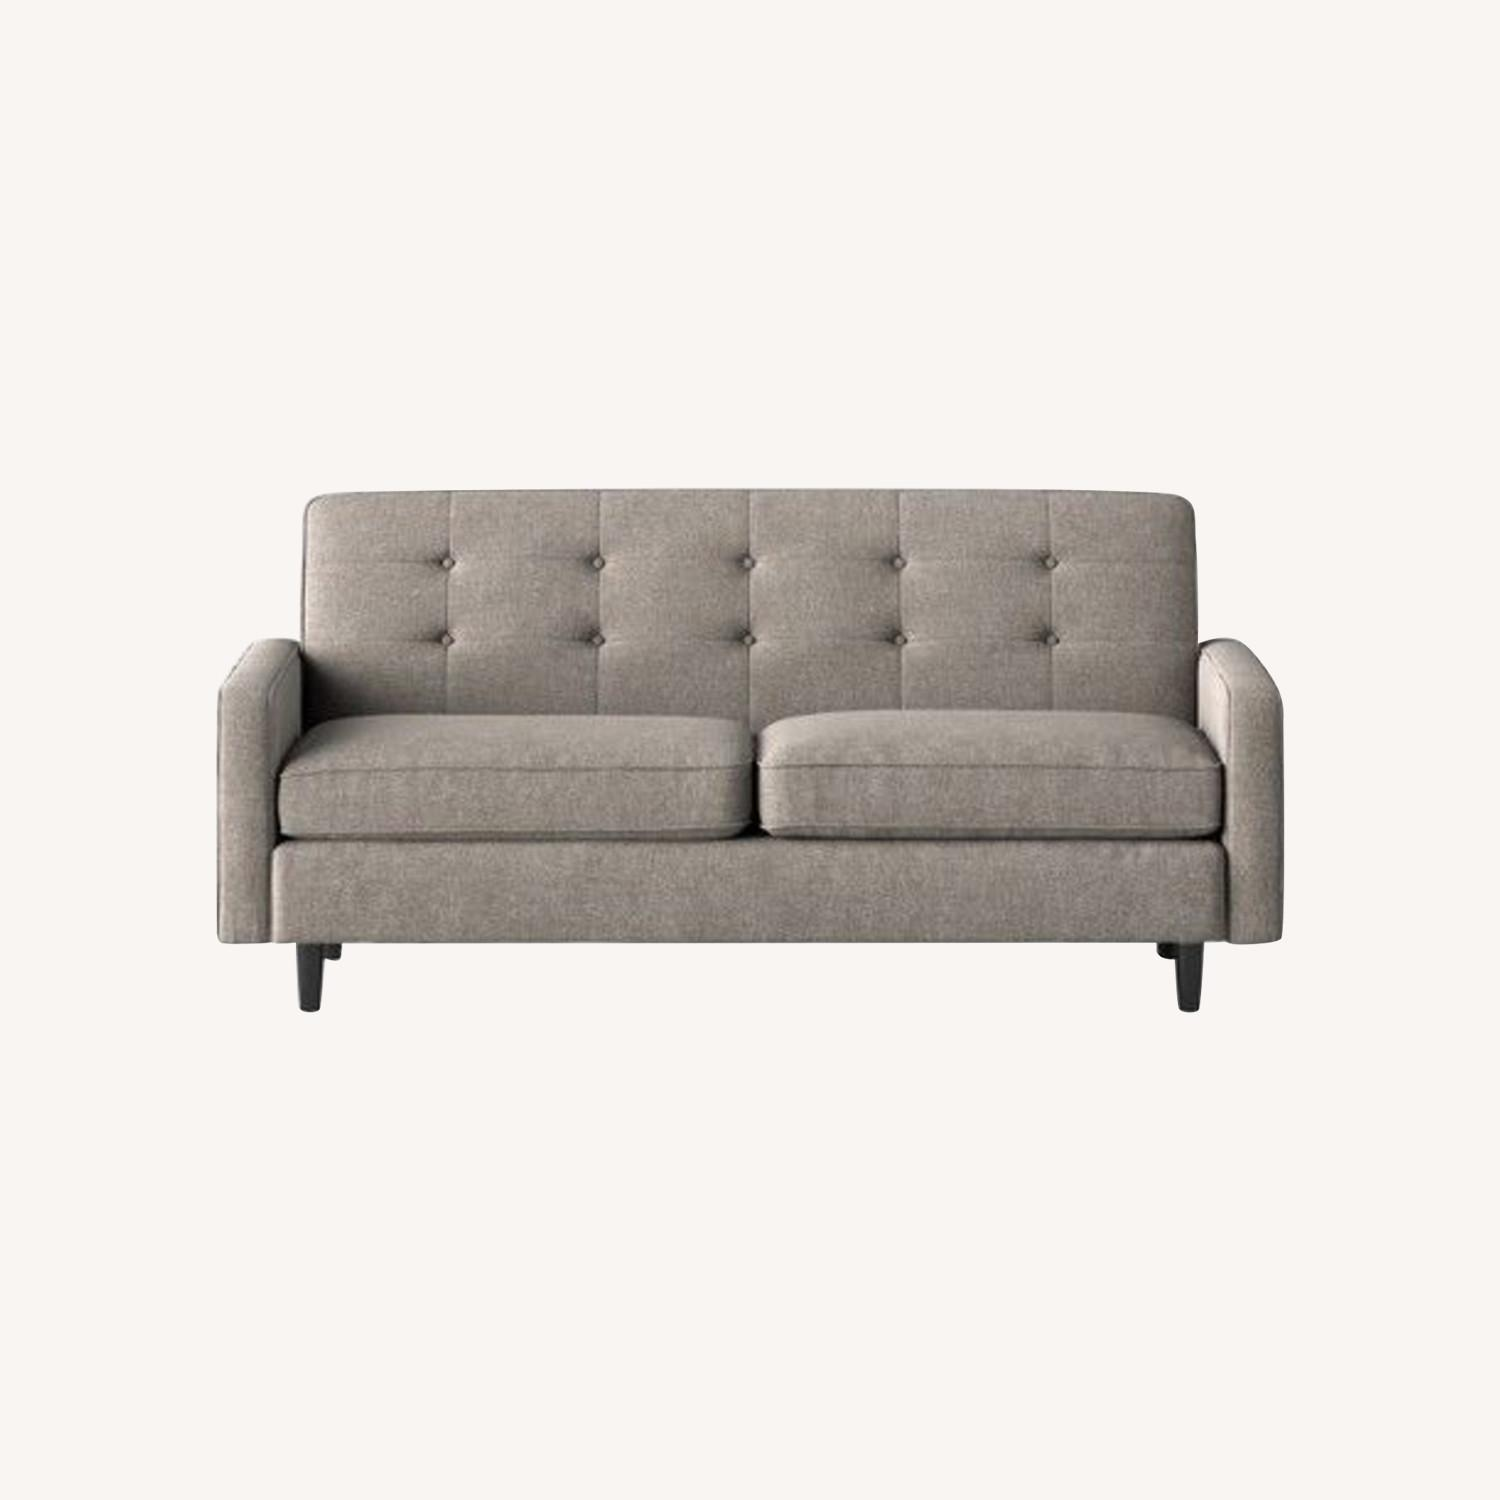 Target Largent Tufted Gray Couch - image-0